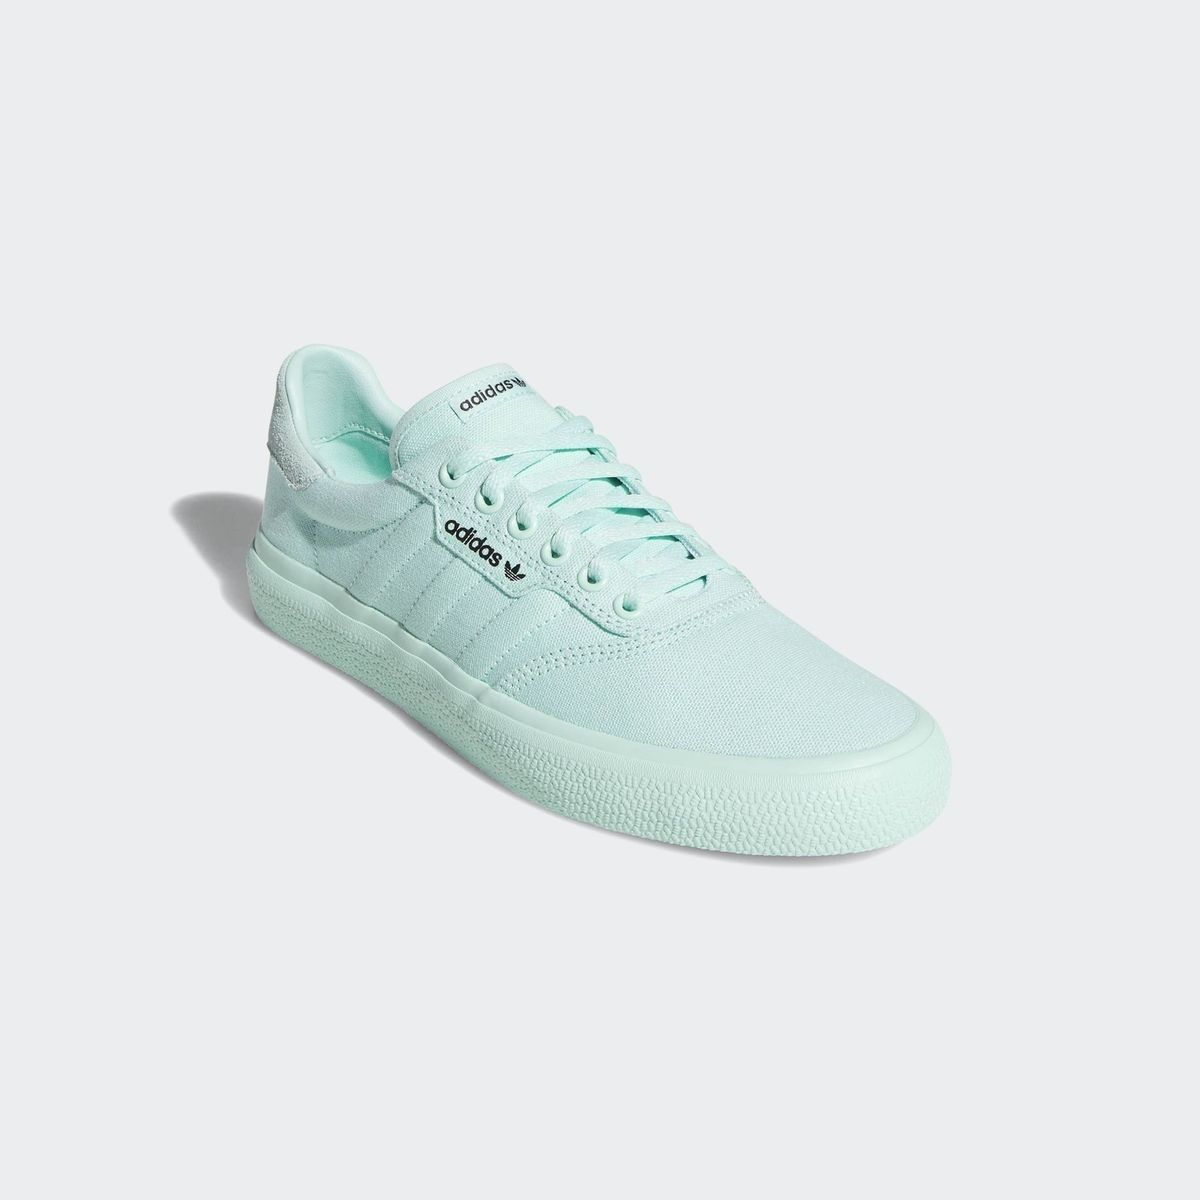 3MC Vulc Shoes White 10.5 Mens b48ee04ca